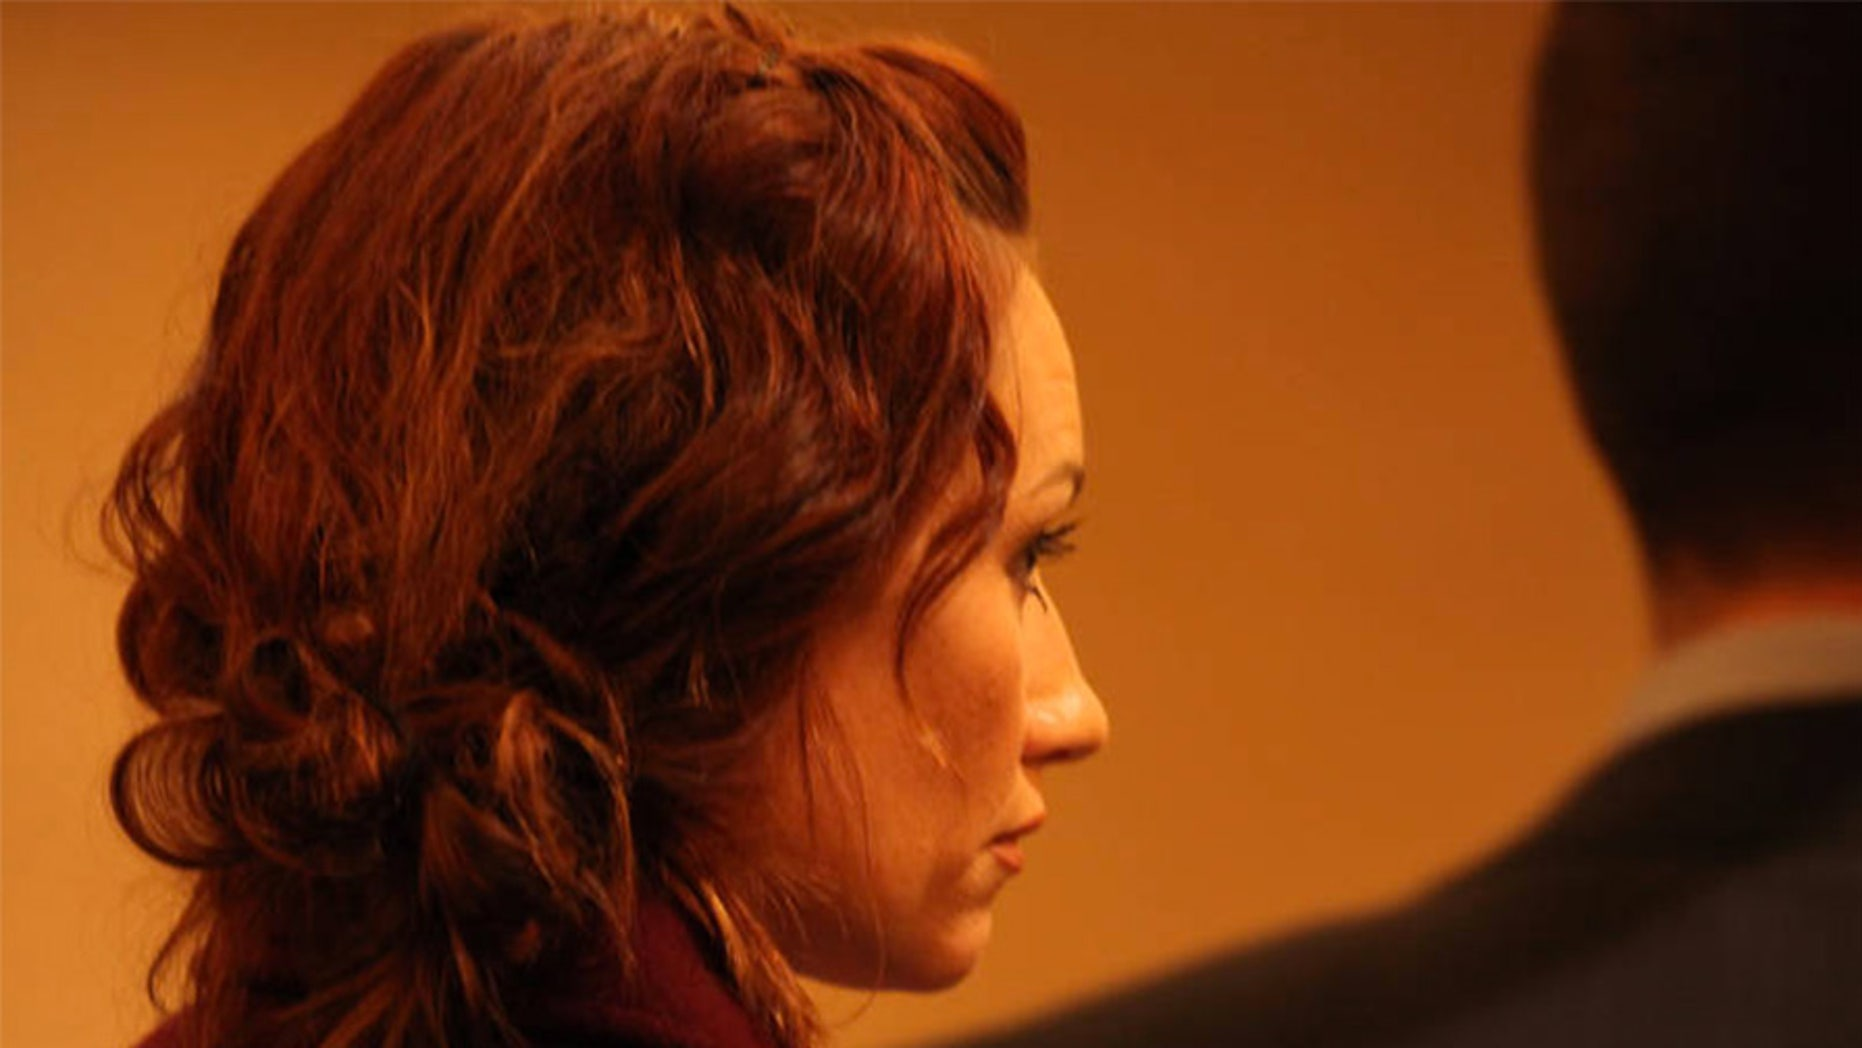 Beaumont High teacher Samantha Ciotta, 32, plead not guilty to felony charges stemming from an alleged affair with a student.